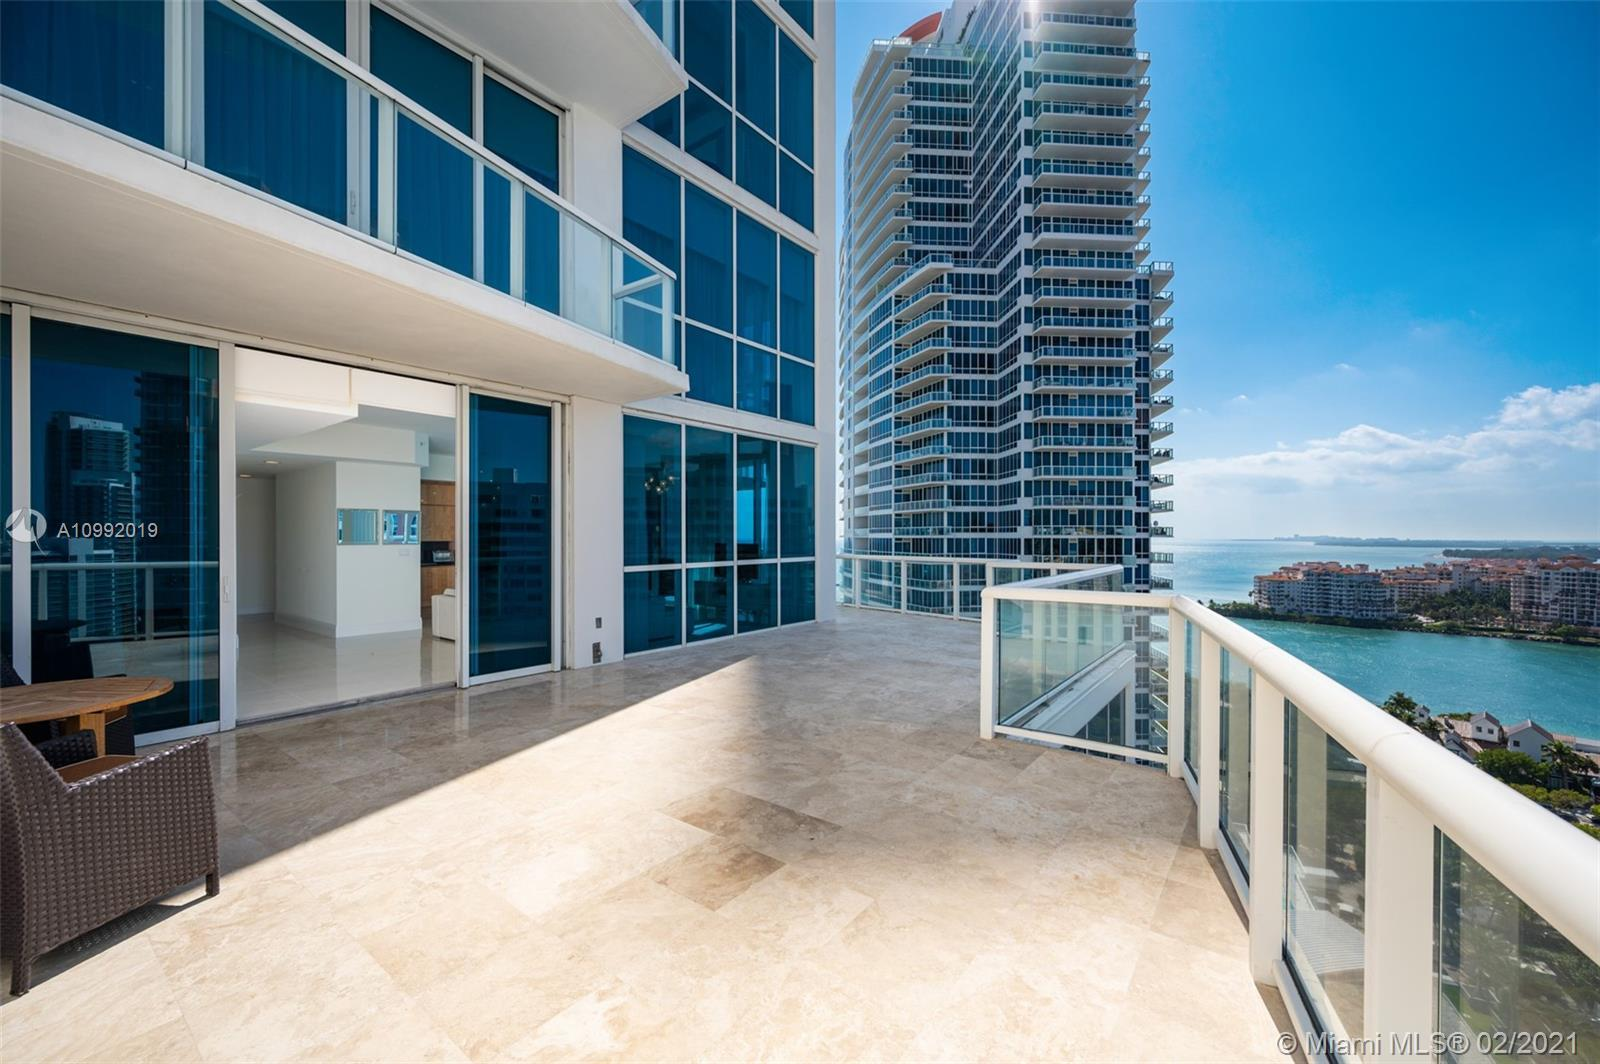 Rare Southwest facing corner unit with extended terrace spanning over 1,000SF. This 2 Bed/2.5 Bath r